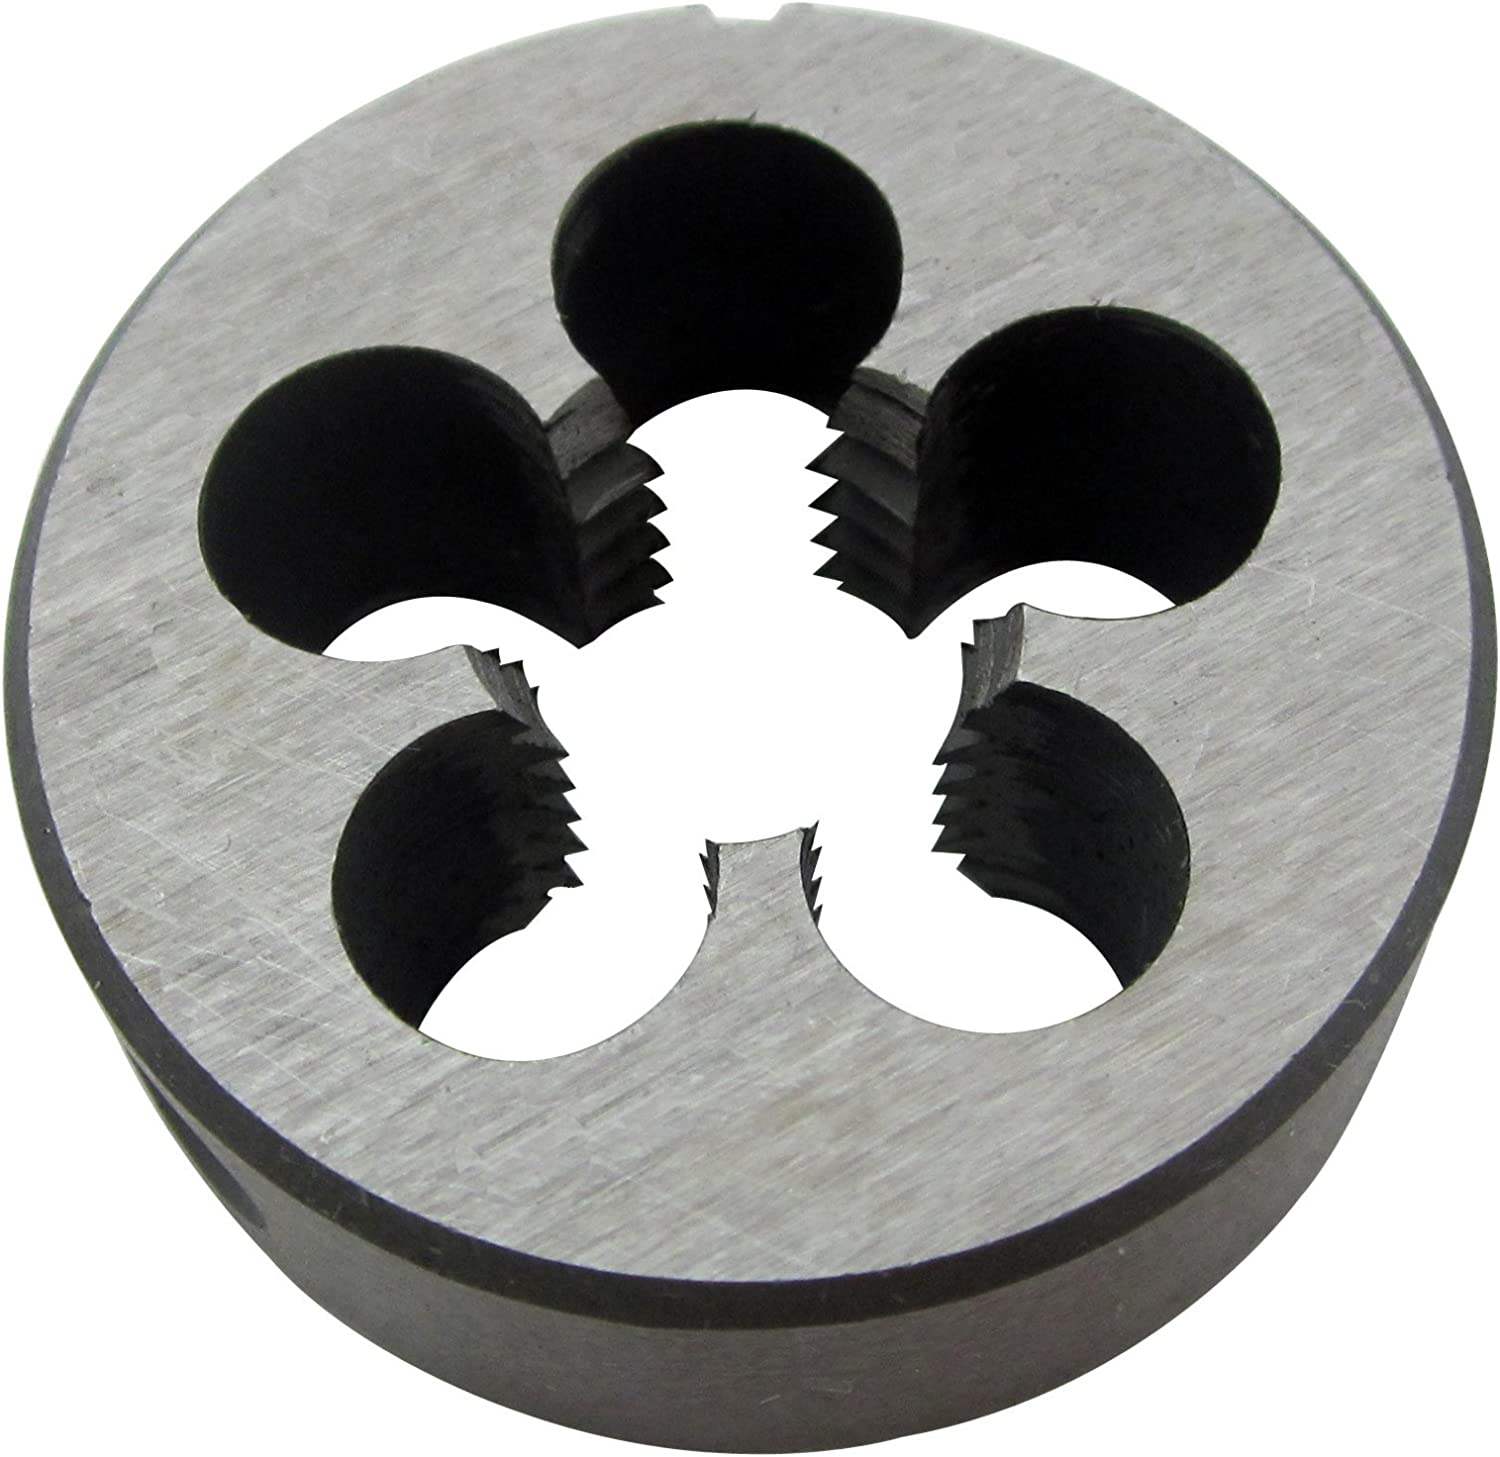 M15 x 0.75 Metric Right hand Thread Die